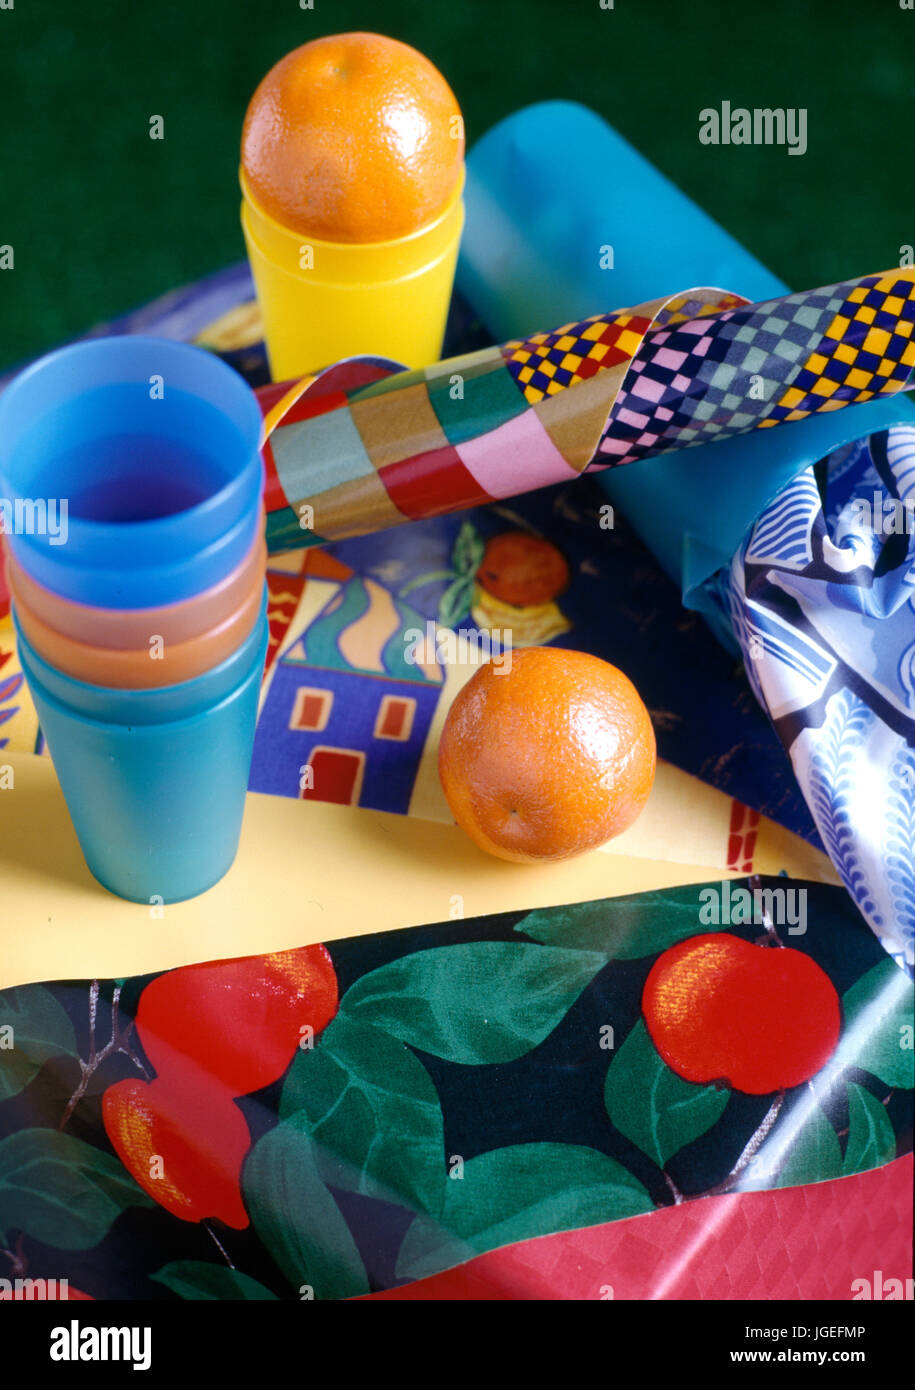 Colouful plastic beakers and fabric samples. - Stock Image